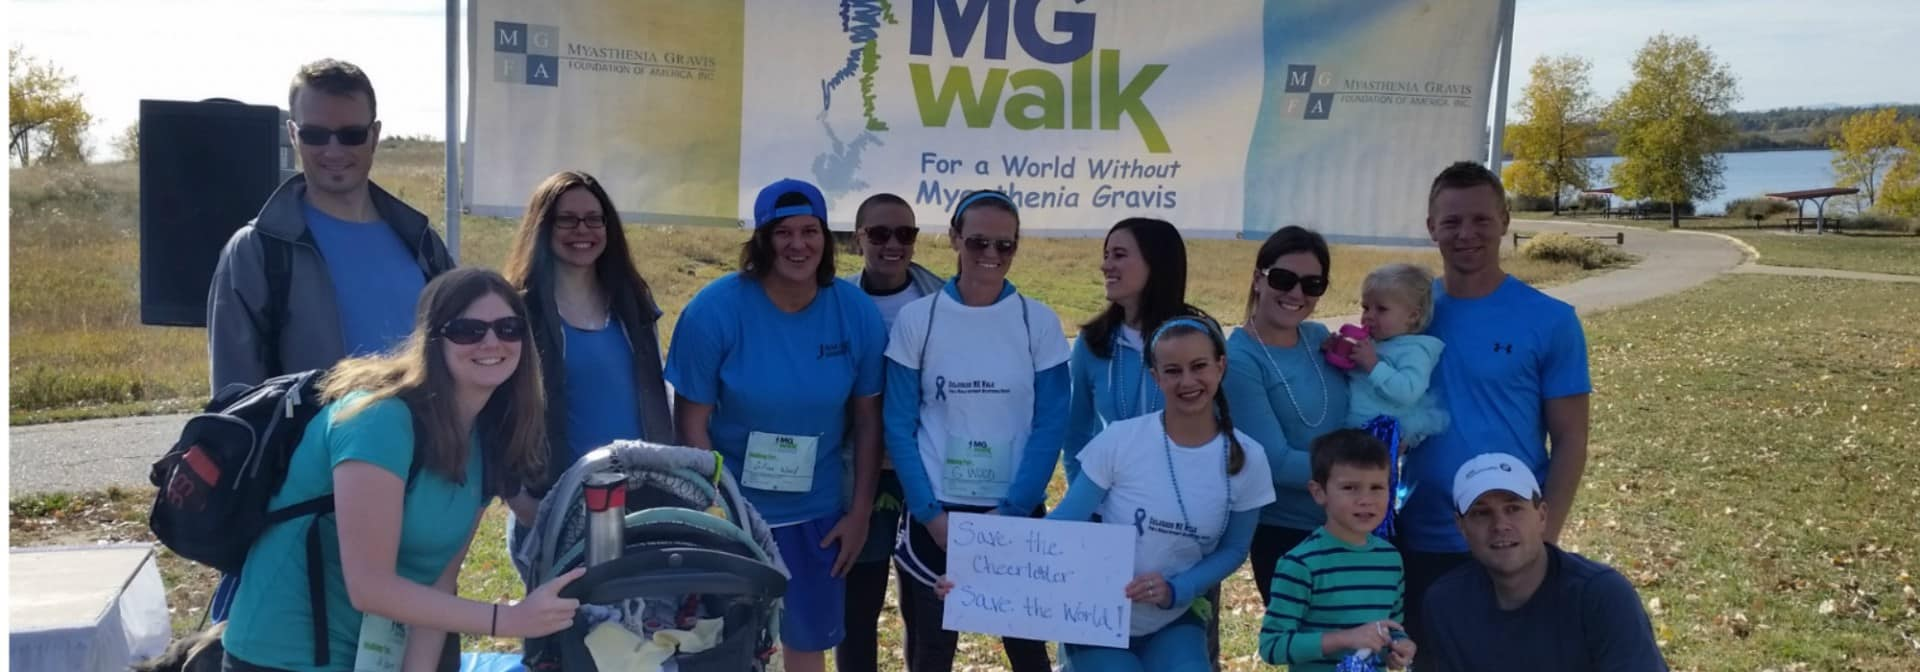 Colorado MG Walk 2015